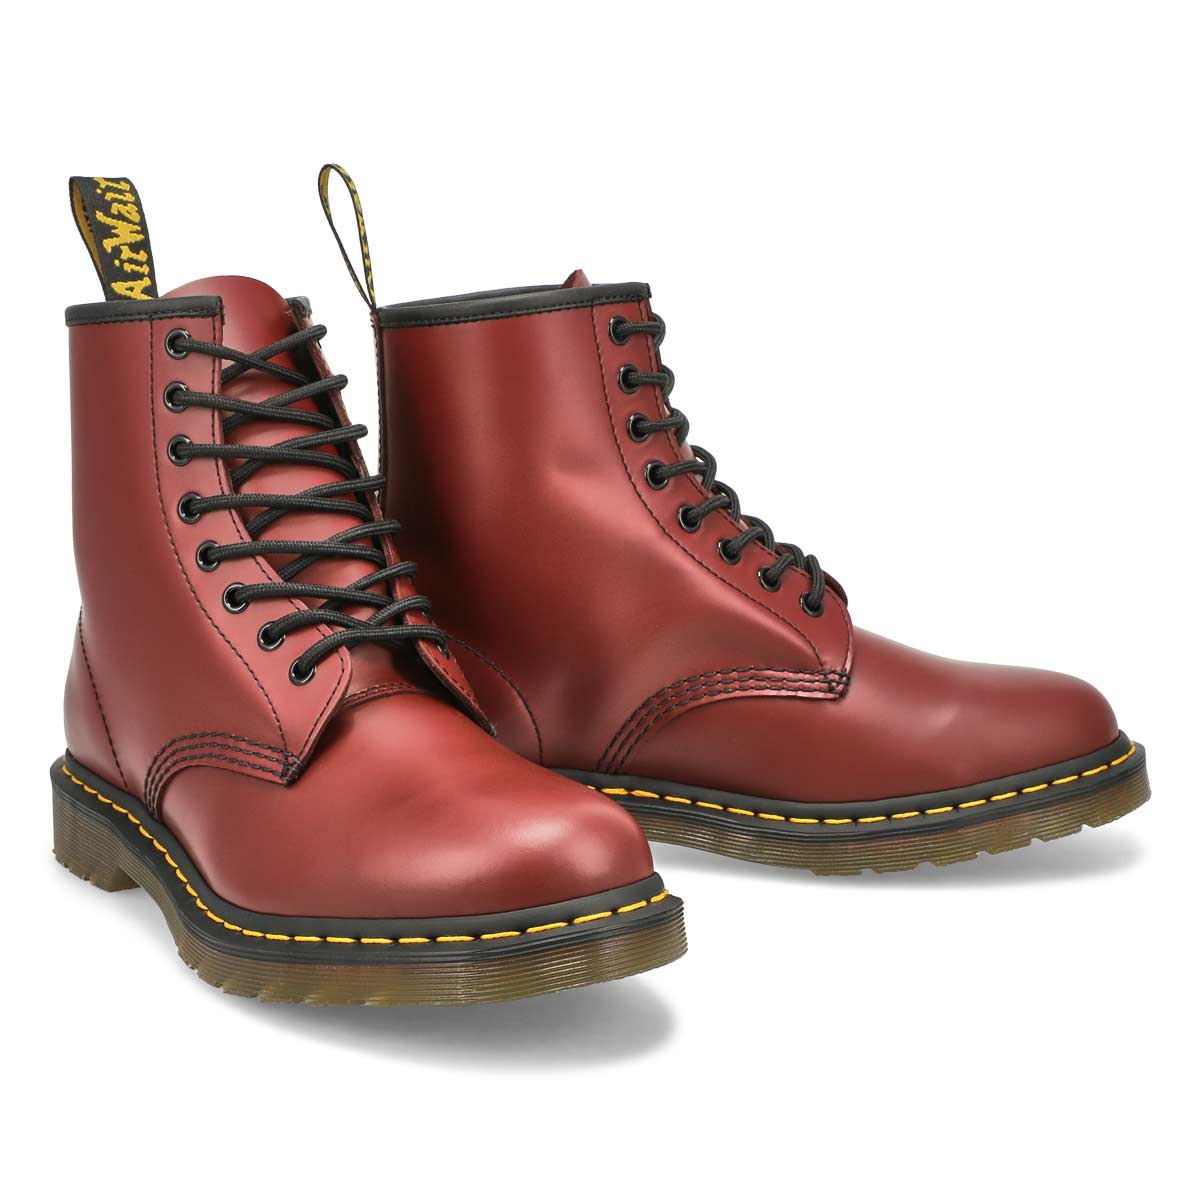 Men's1460 8-Eye Smooth Leather Boot - Cherry Red